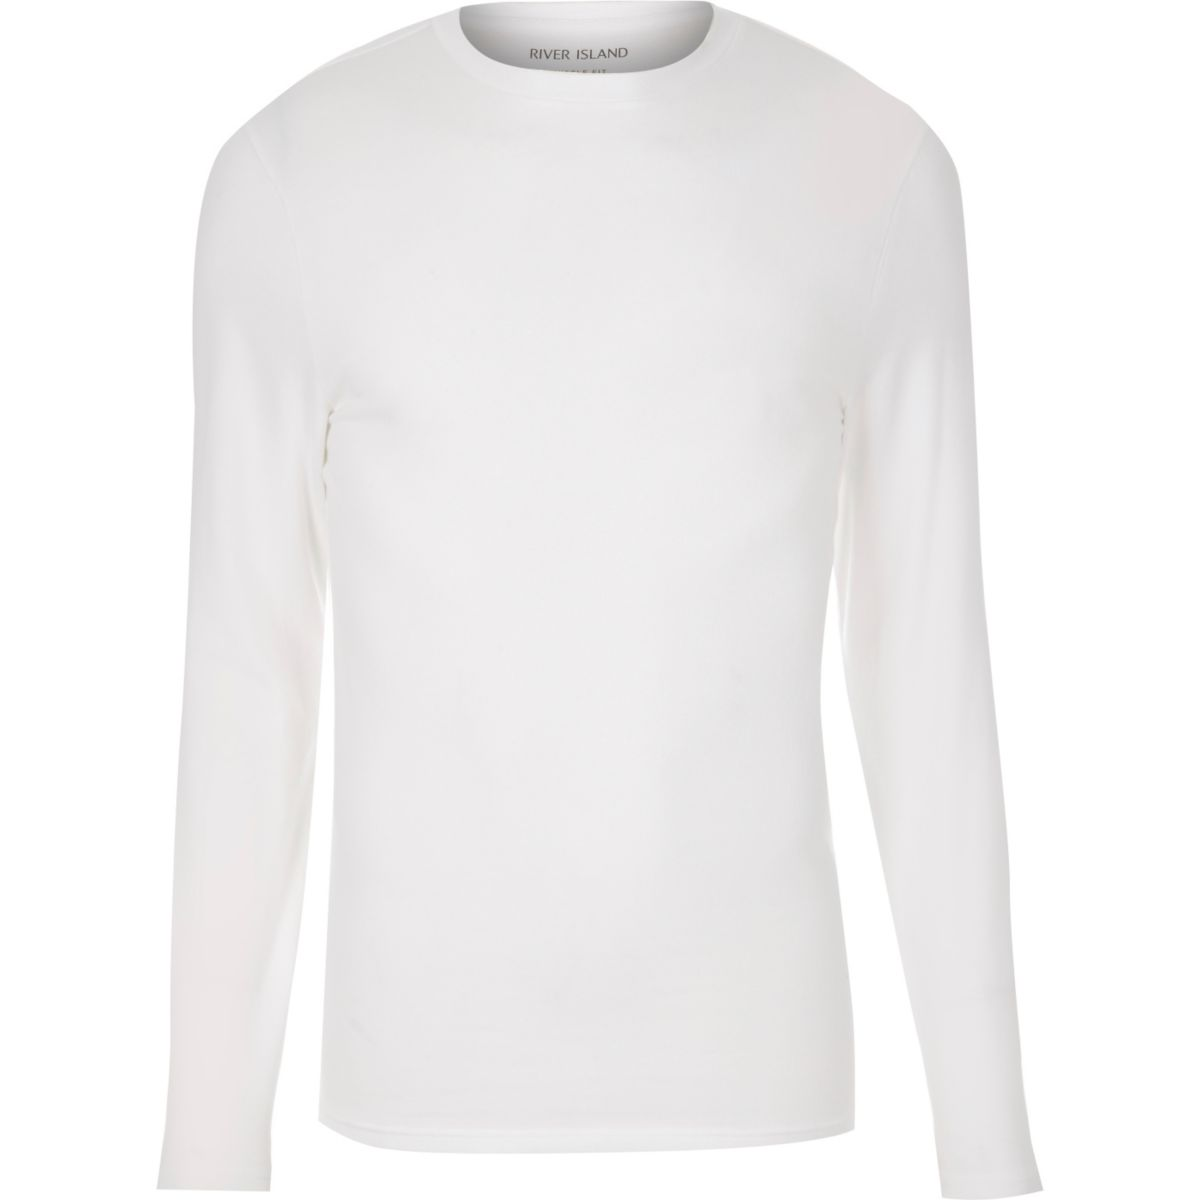 White Muscle Fit Long Sleeve T Shirt T Shirts Vests